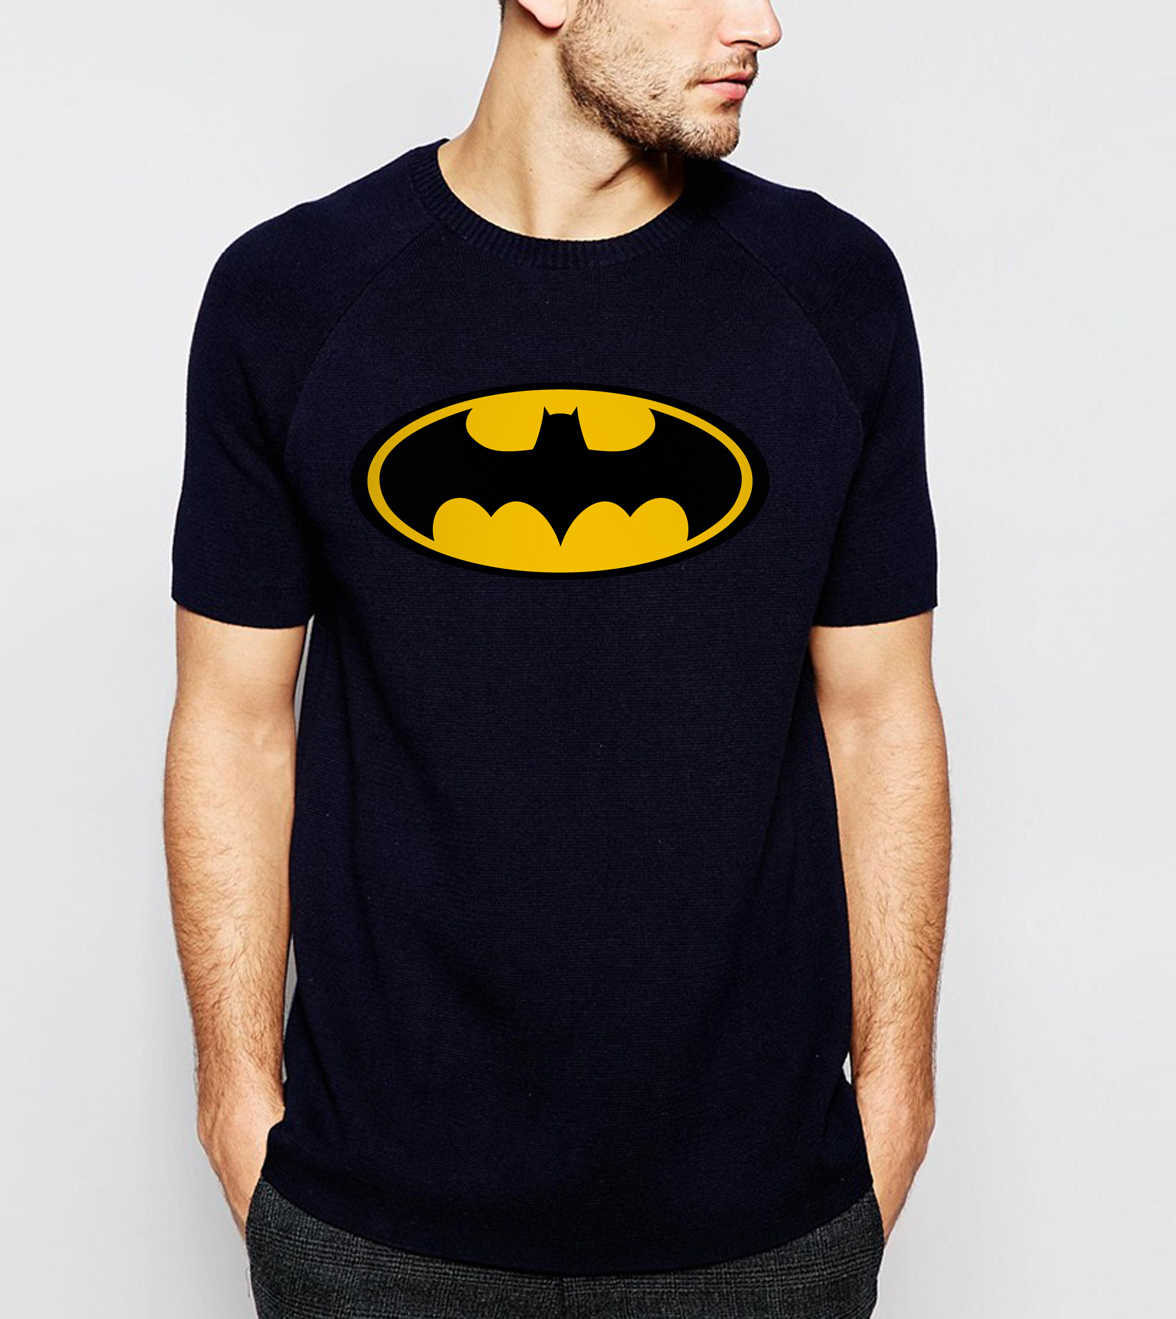 Unisex Heißer Film Bat Mann Logo T-shirt Cartoon Super Hero Männer T-shirt Hip Hop Sommer Kurzarm Marvel 100% baumwolle Muster Tops